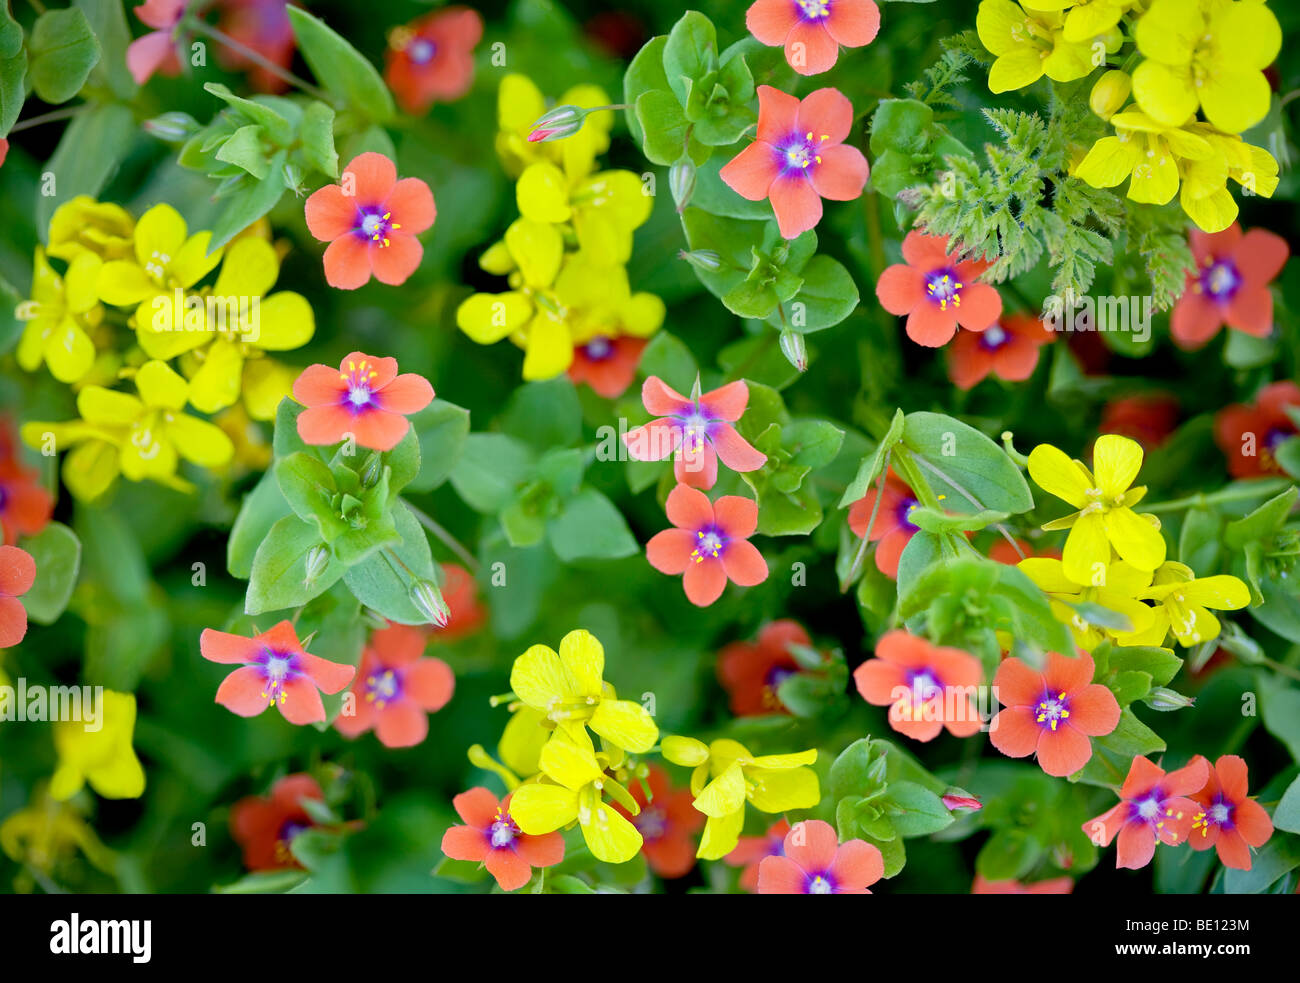 Pink Scarlet pimpernel (Anagalis averensis) and yellow Western Wallflower (Erysimum capitatum). Big Sur coast, California - Stock Image